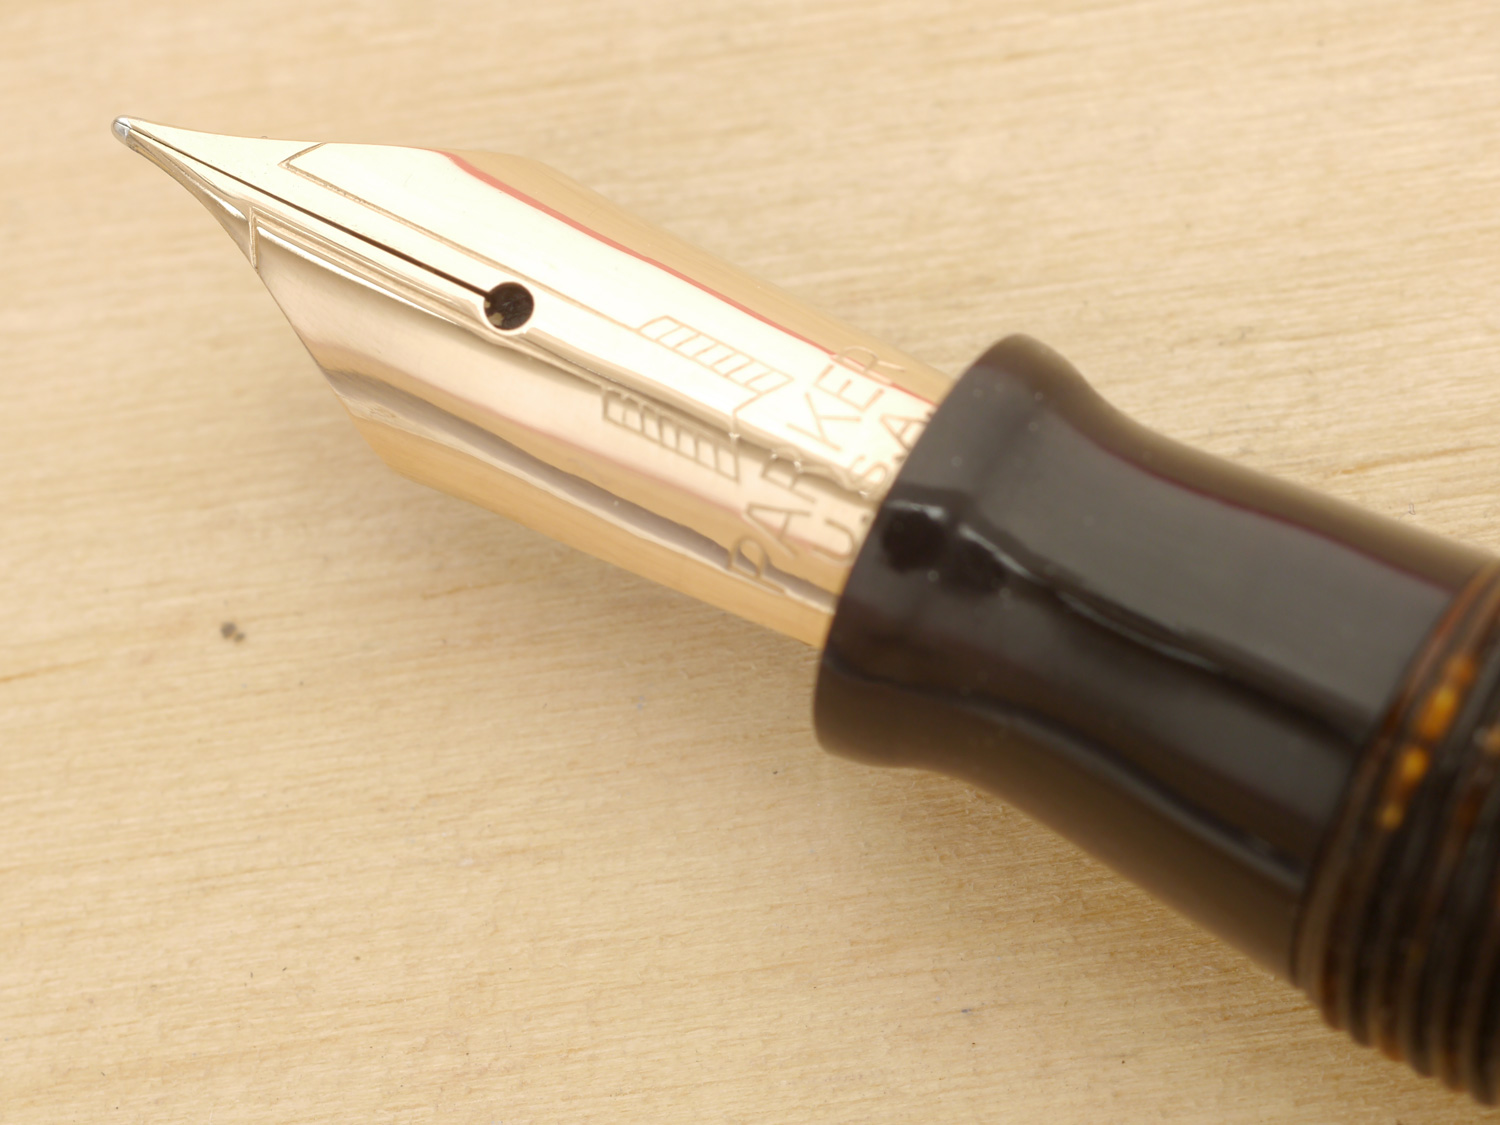 Parker Vacumatic Major Fountain Pen, Golden Pearl, XF, nib close-up